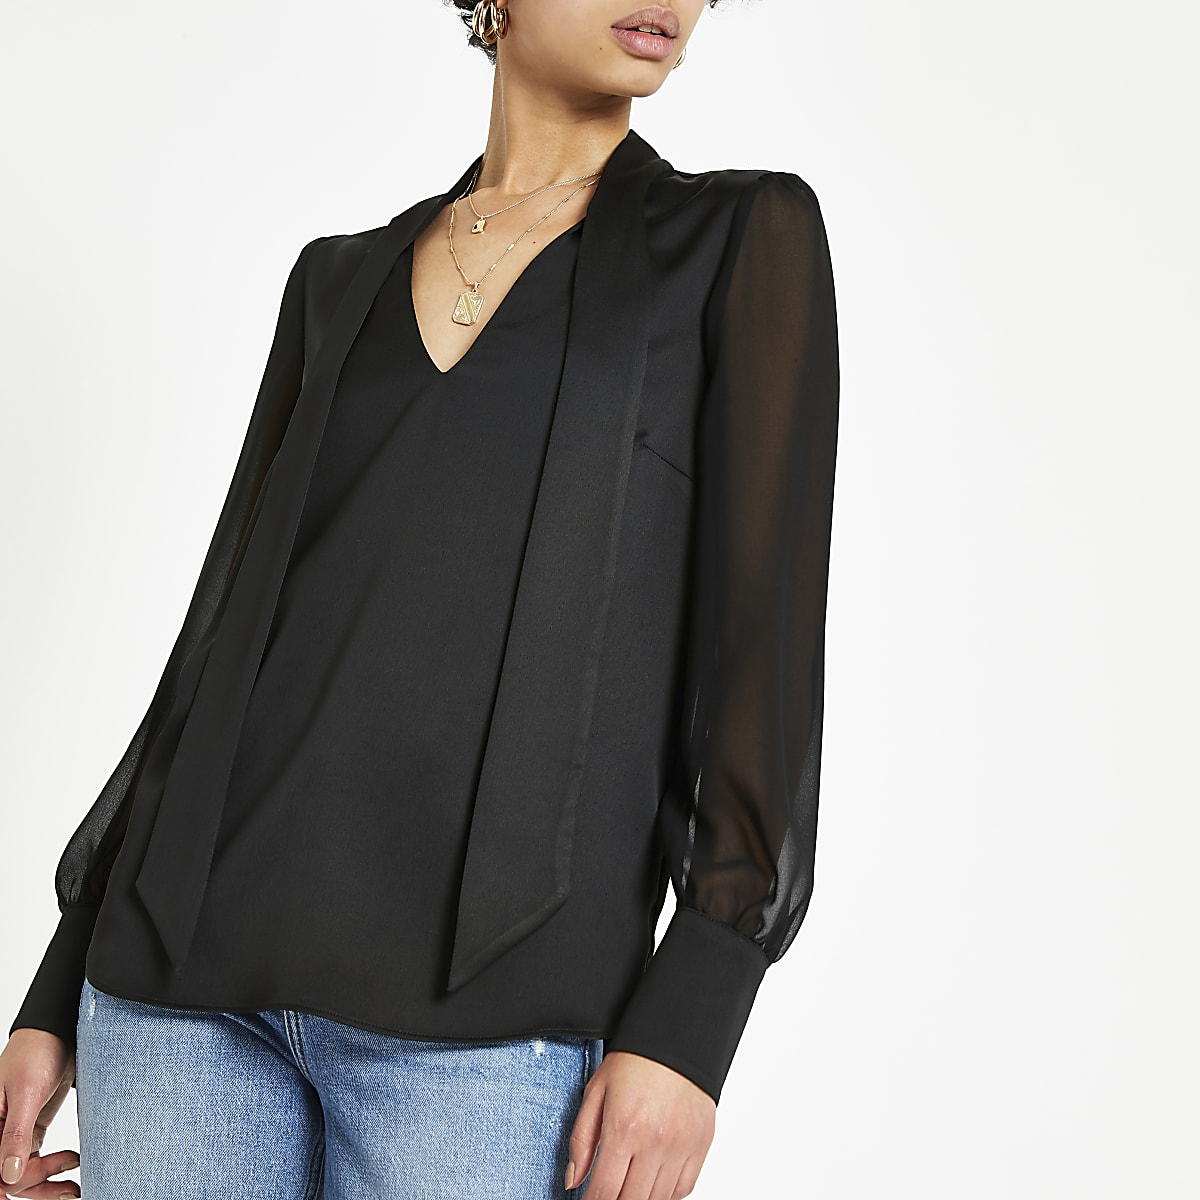 Black satin tie neck blouse